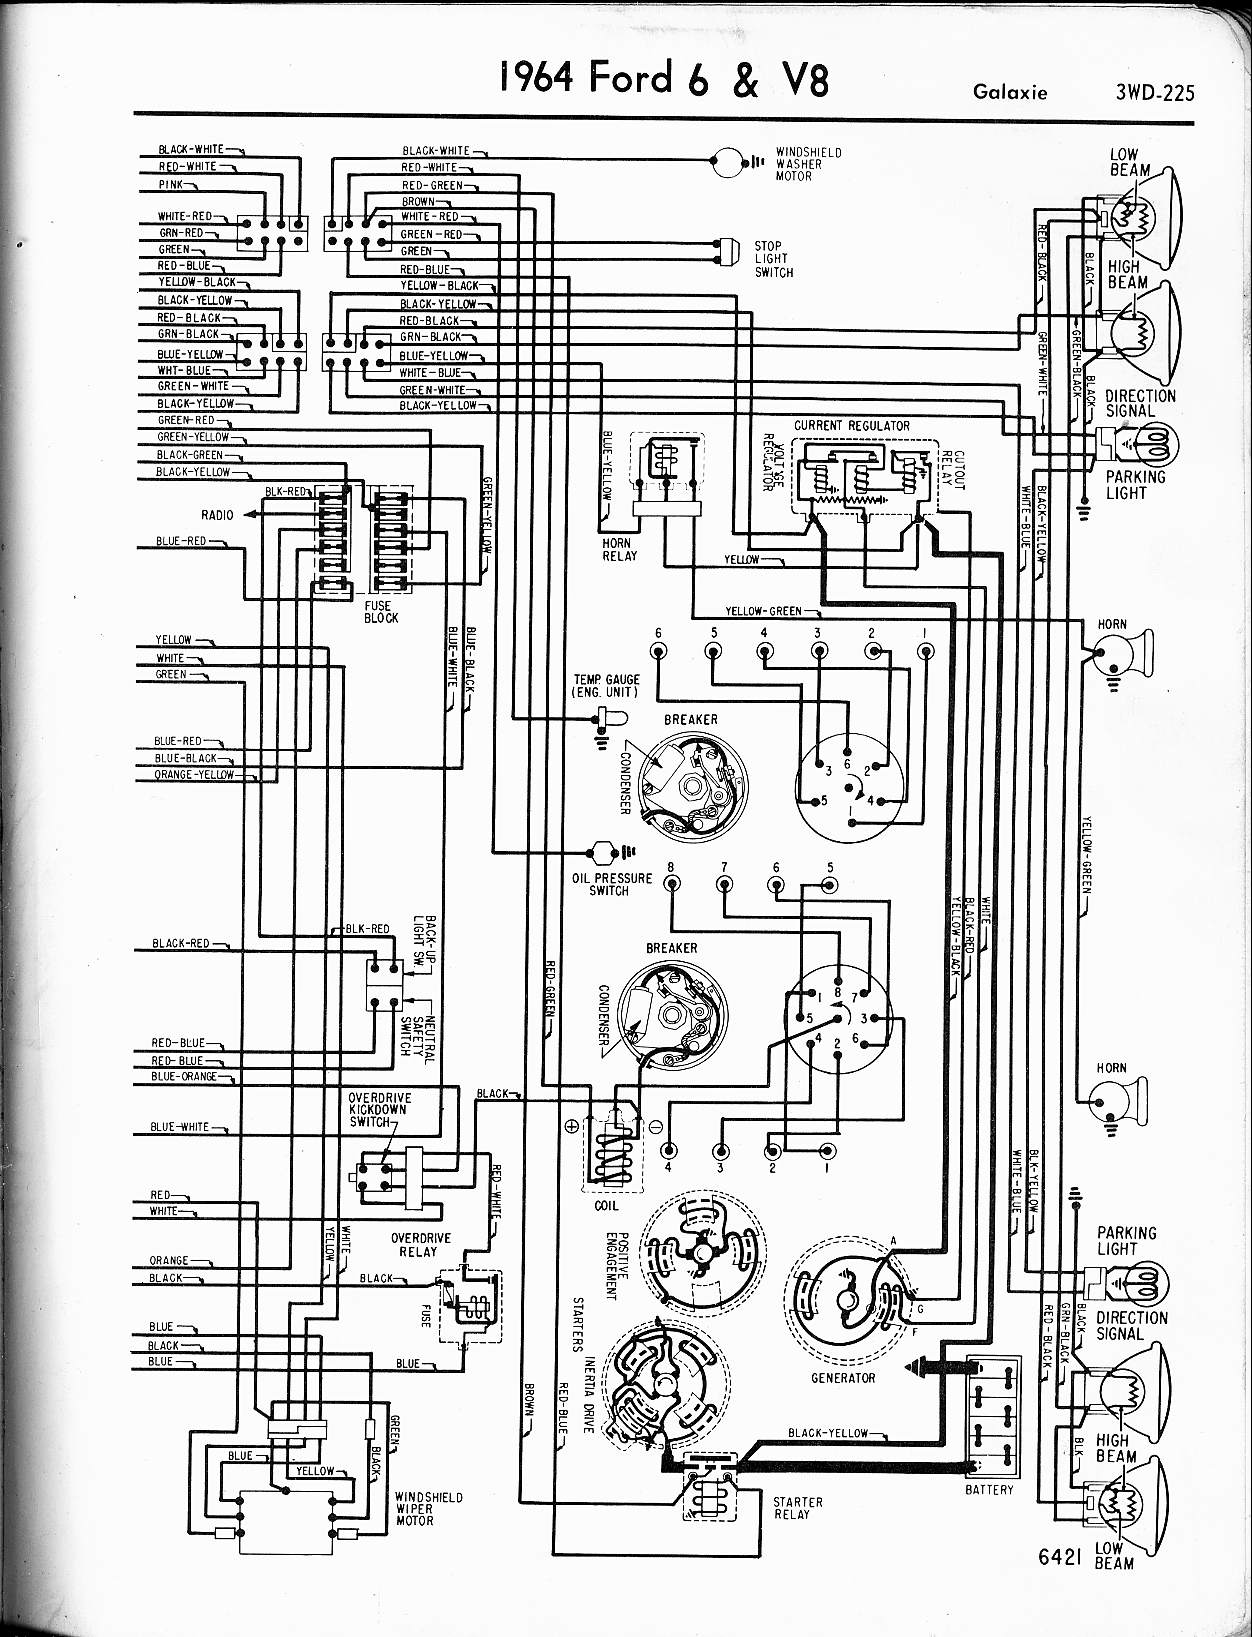 stereo wiring diagram honda civic 2000 wiring diagram ford galaxy 2000 57-65 ford wiring diagrams #15